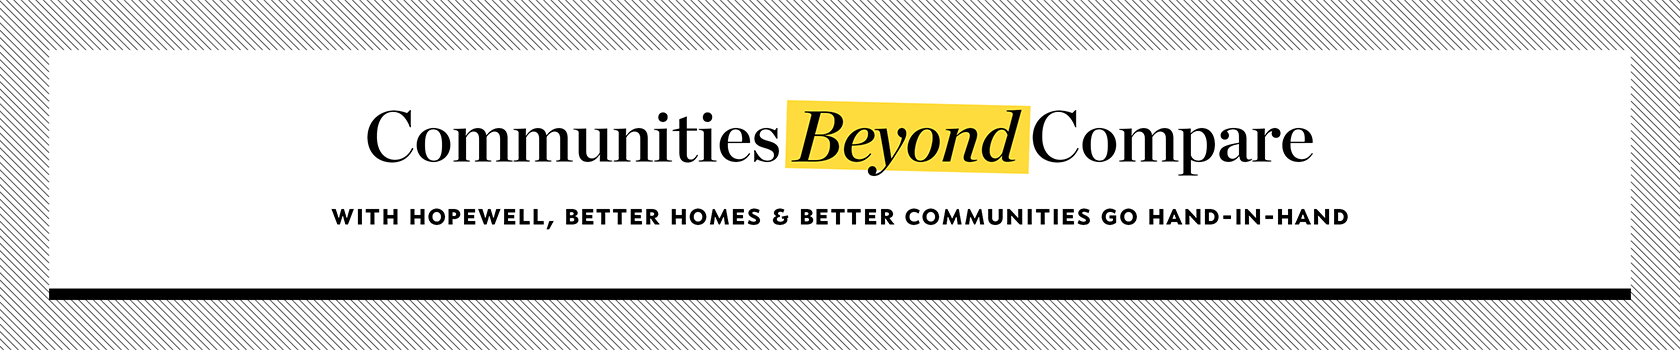 Communities Beyond Compare  banner